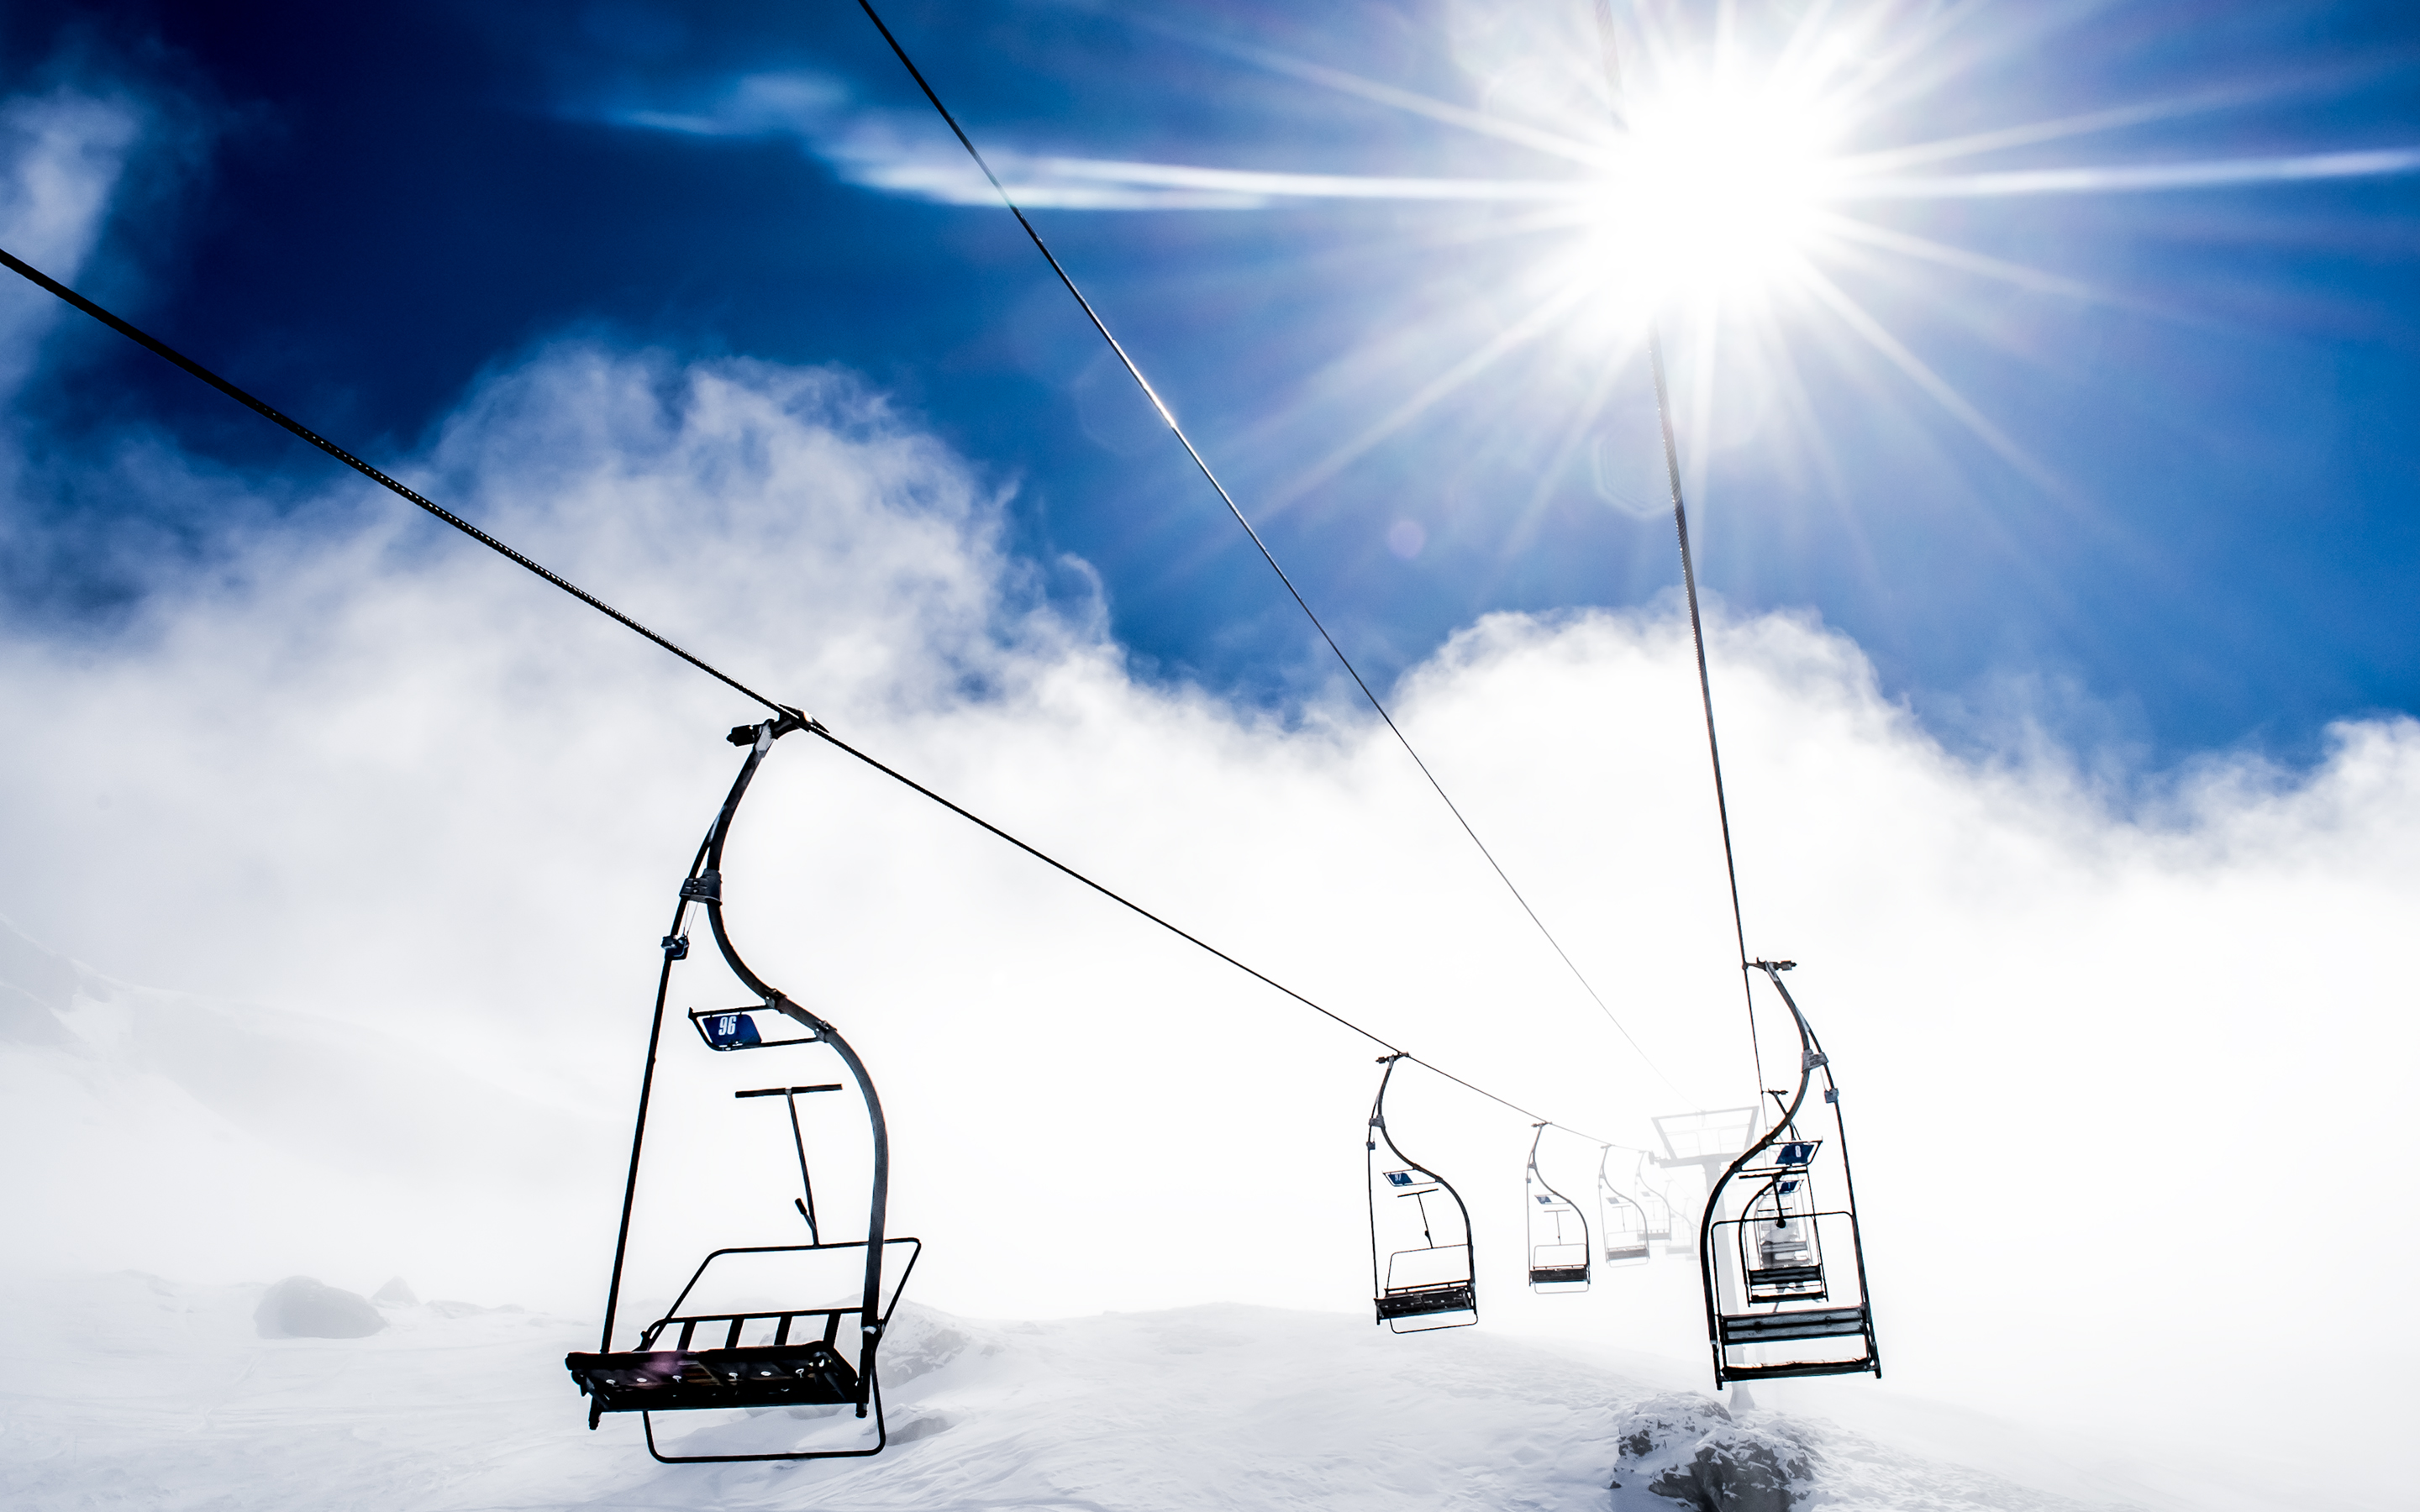 Mountain Ropeway Ski Resort Wallpapers HD Wallpapers 2880x1800